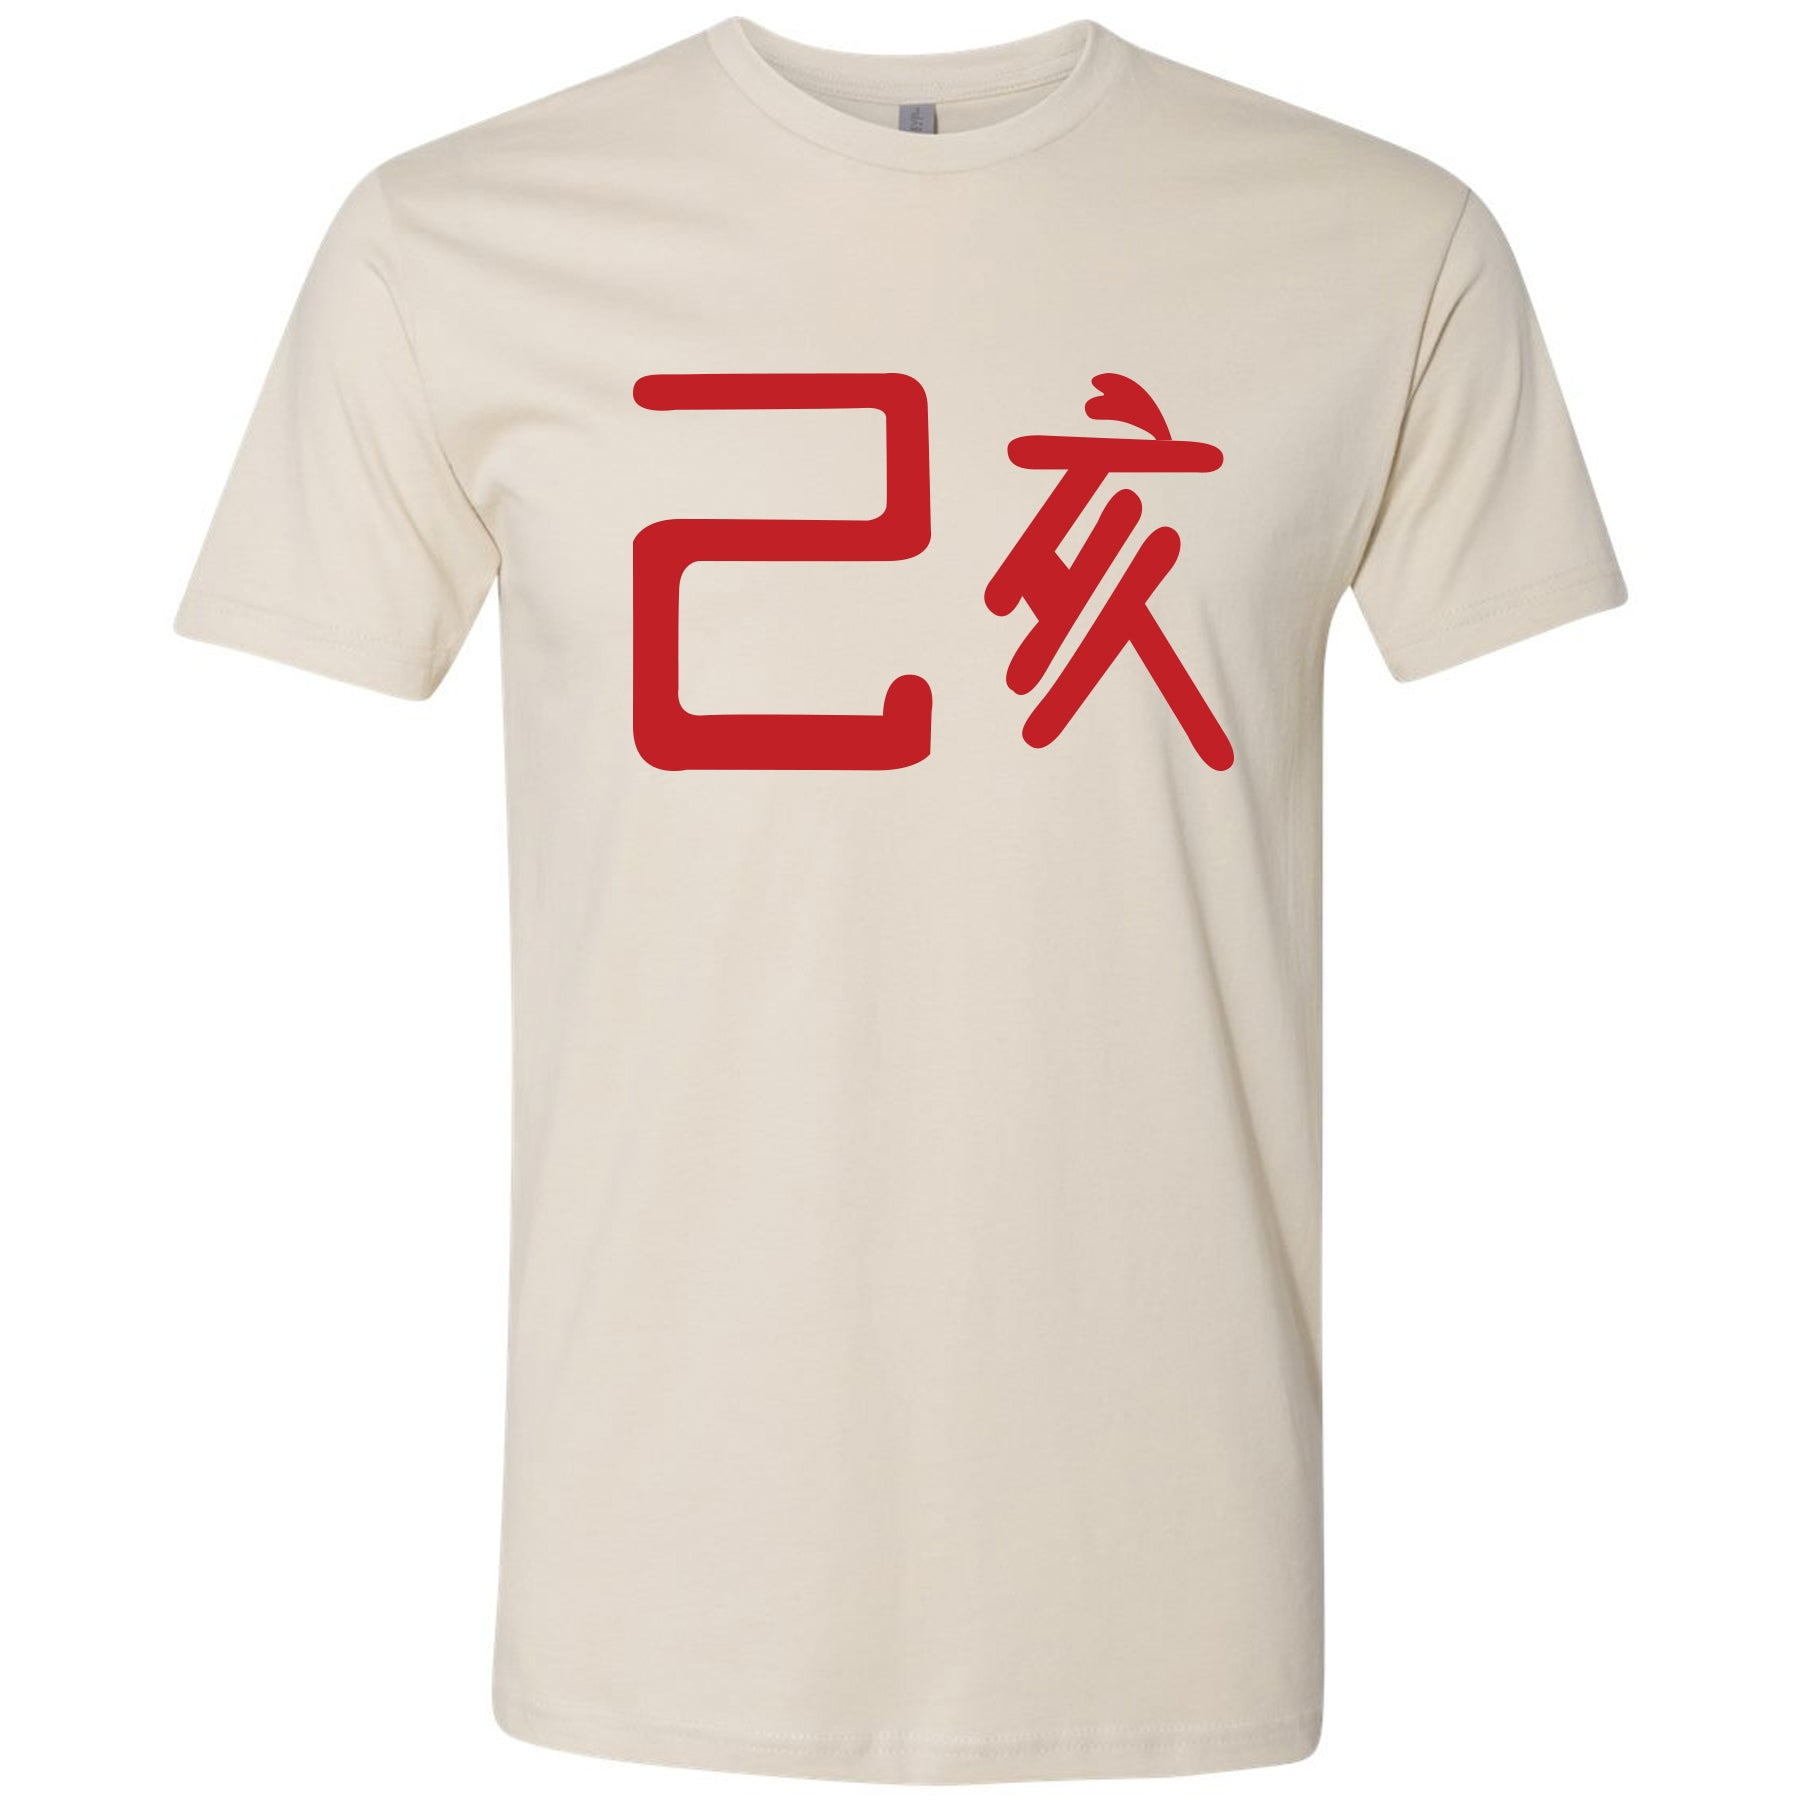 best sneakers 5e6c8 417b9 ... Cream T-Shirt  Match your pair of Chinese New Year Jordan 12s with this Jordan  12 Chinese New Year